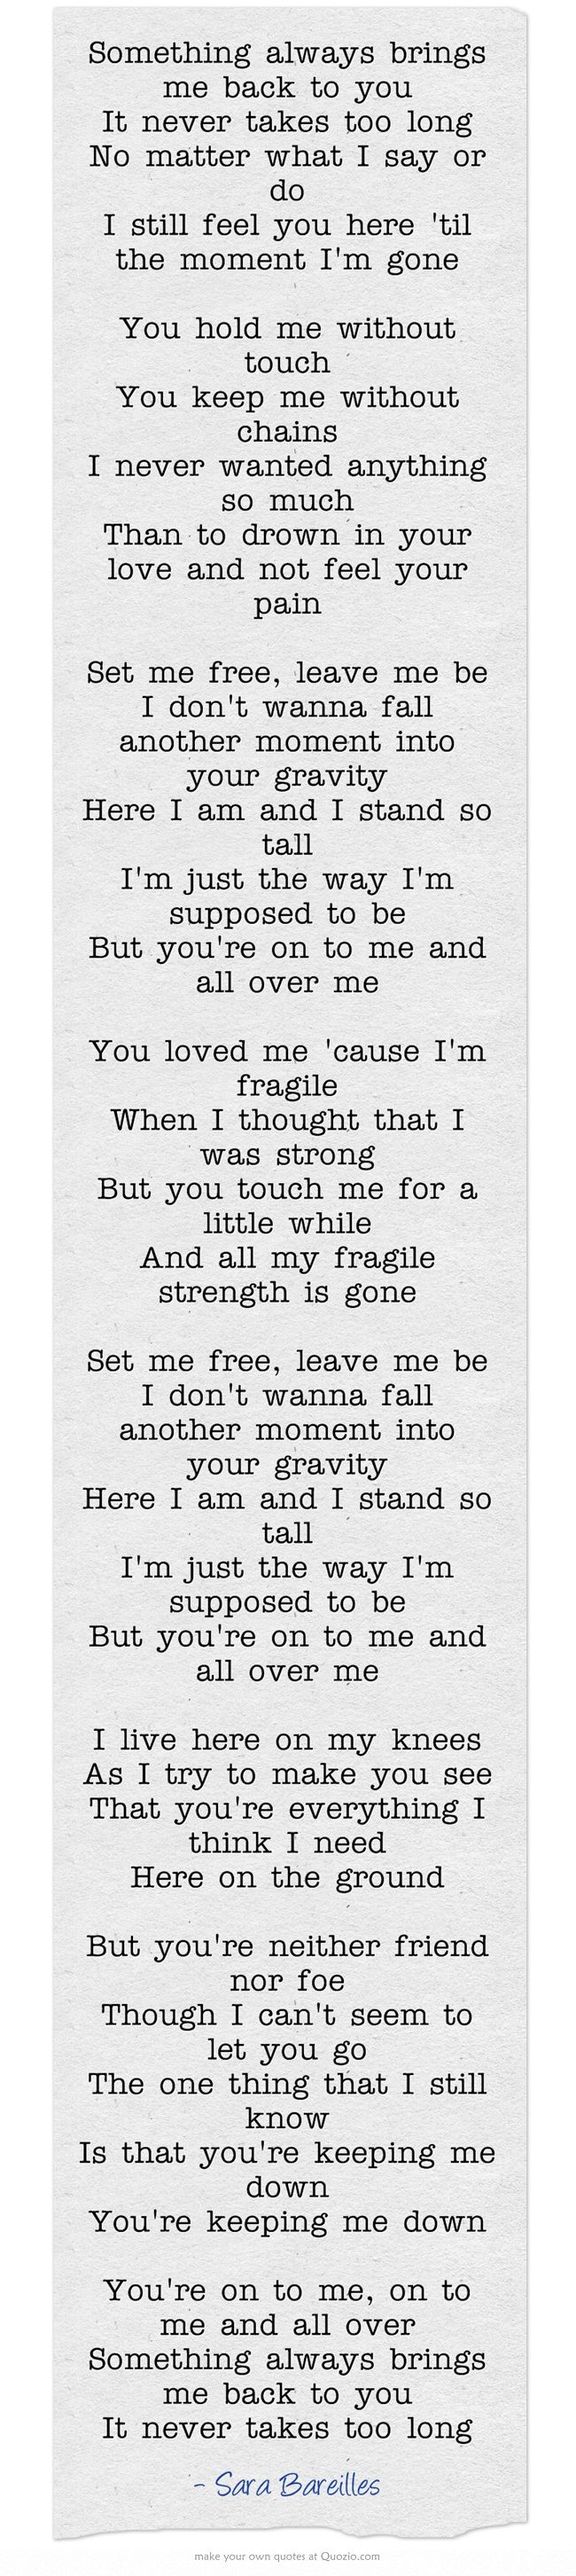 """Gravity"" by Sara Bareilles is one of my absolute favorite songs. I love the lyrics, the melody, Sara's voice, and just everything about this song. It's definitely on my top 10 favorite songs of all time."